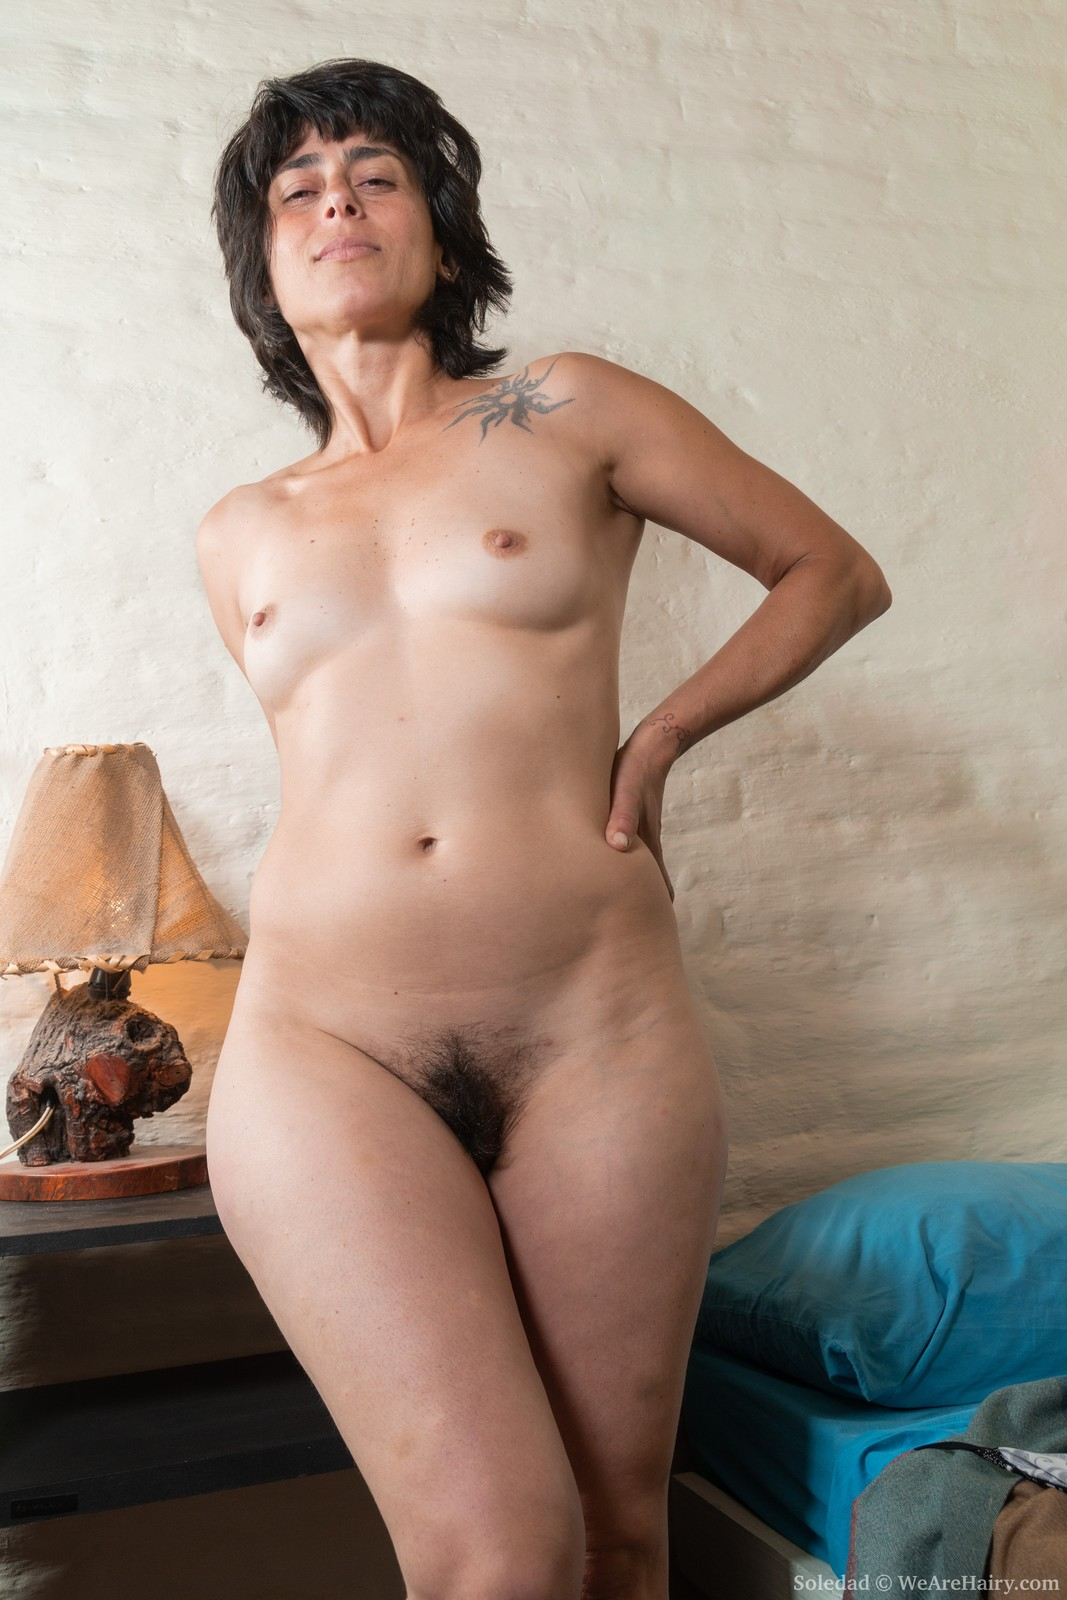 Soledad from WeAreHairy.com